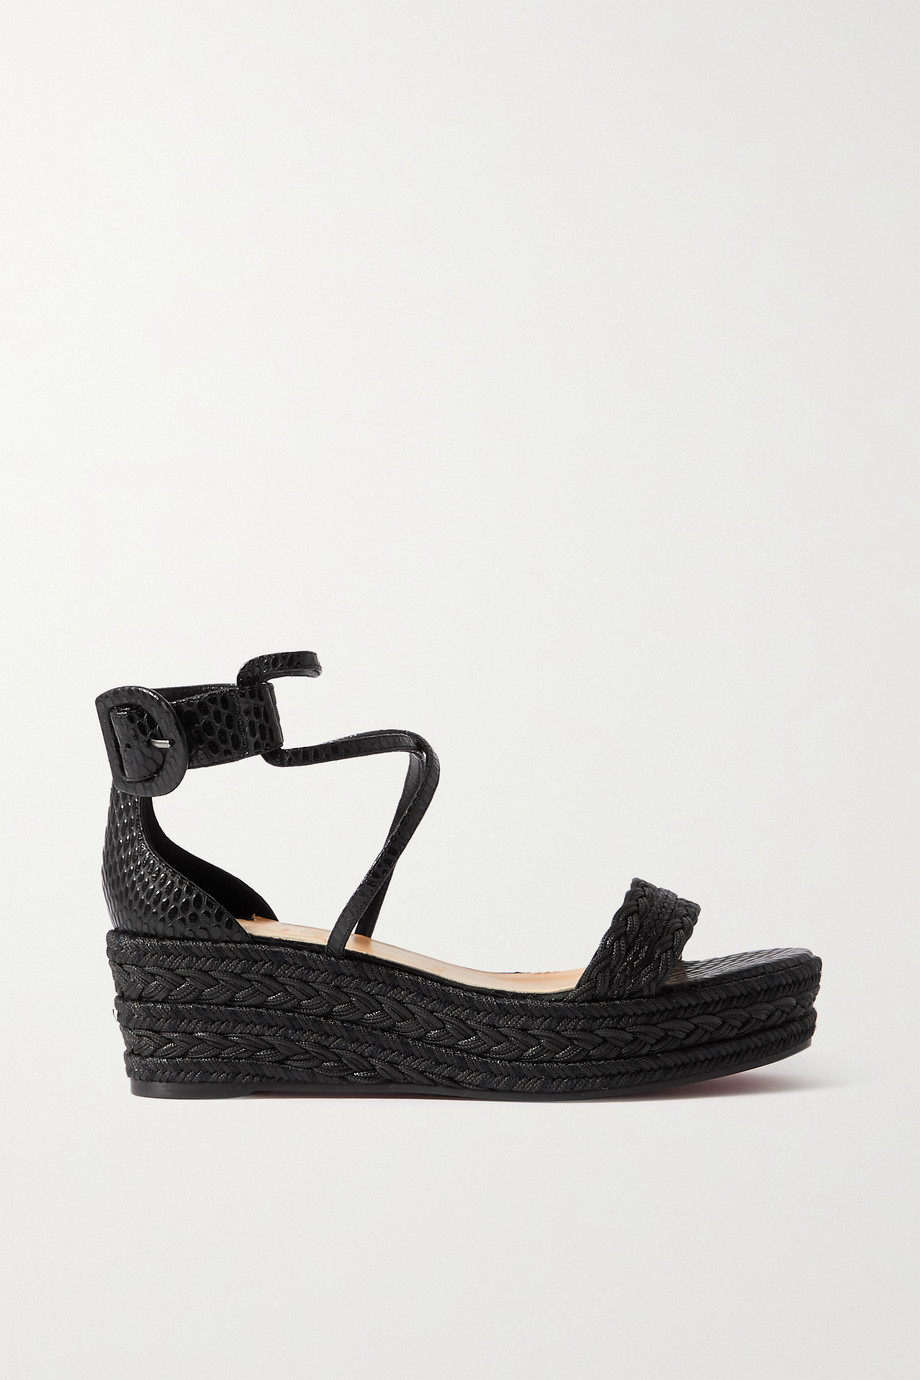 CHRISTIAN LOUBOUTIN Bodrum 60 lizard-effect leather and woven cotton espadrille platform sandals